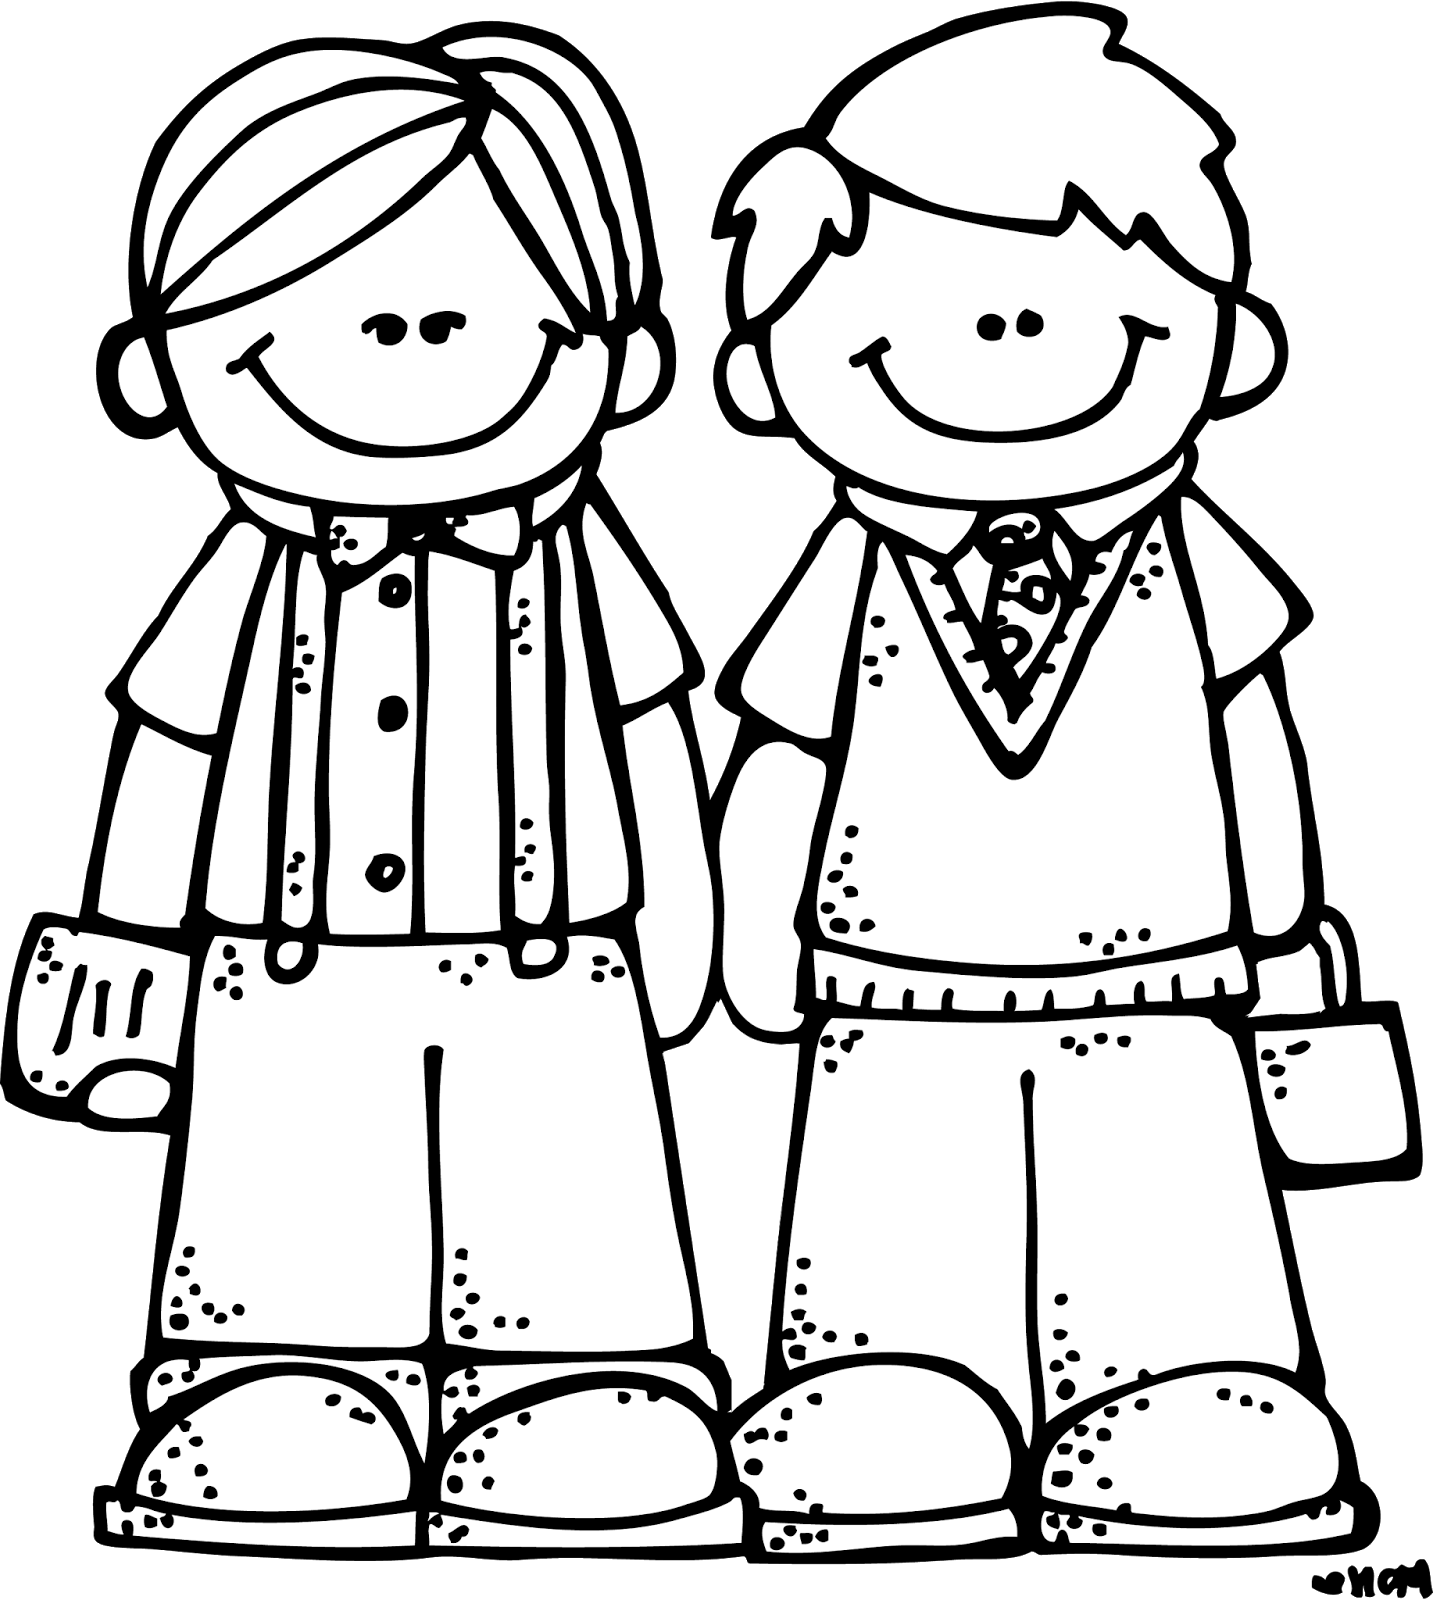 Melonheadz school clipart black and white freeuse download Melonheadz LDS illustrating: More conference inspirations ... freeuse download